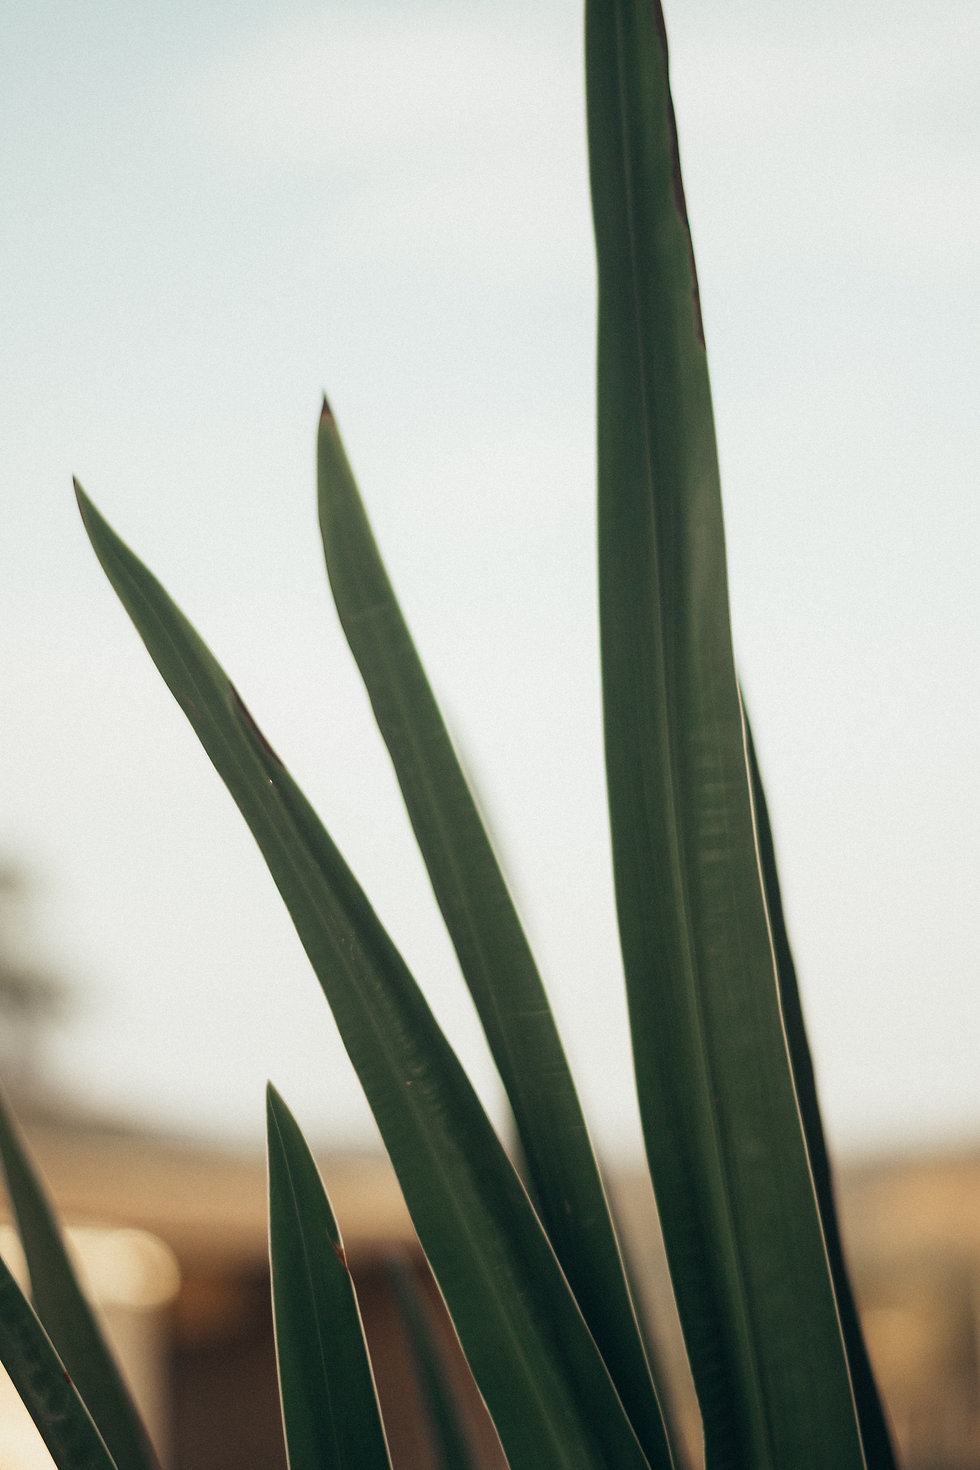 Simple photo of an indoor green plant